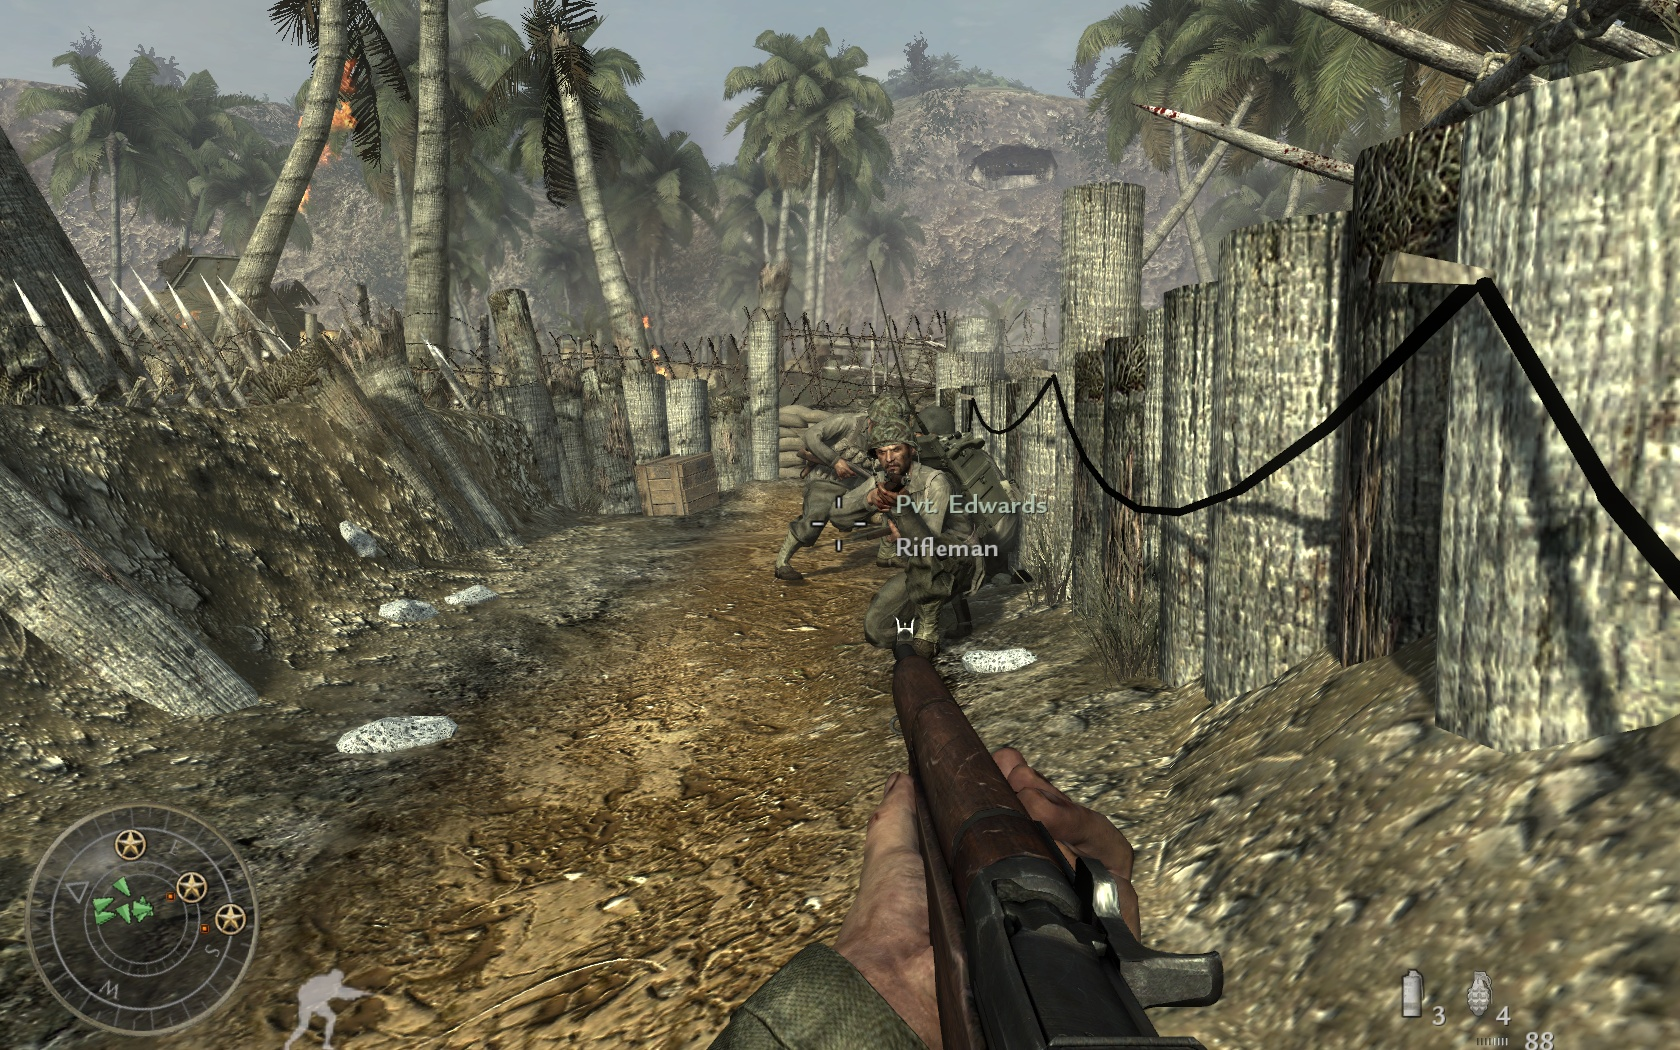 Call of Duty Worla at War Game Play